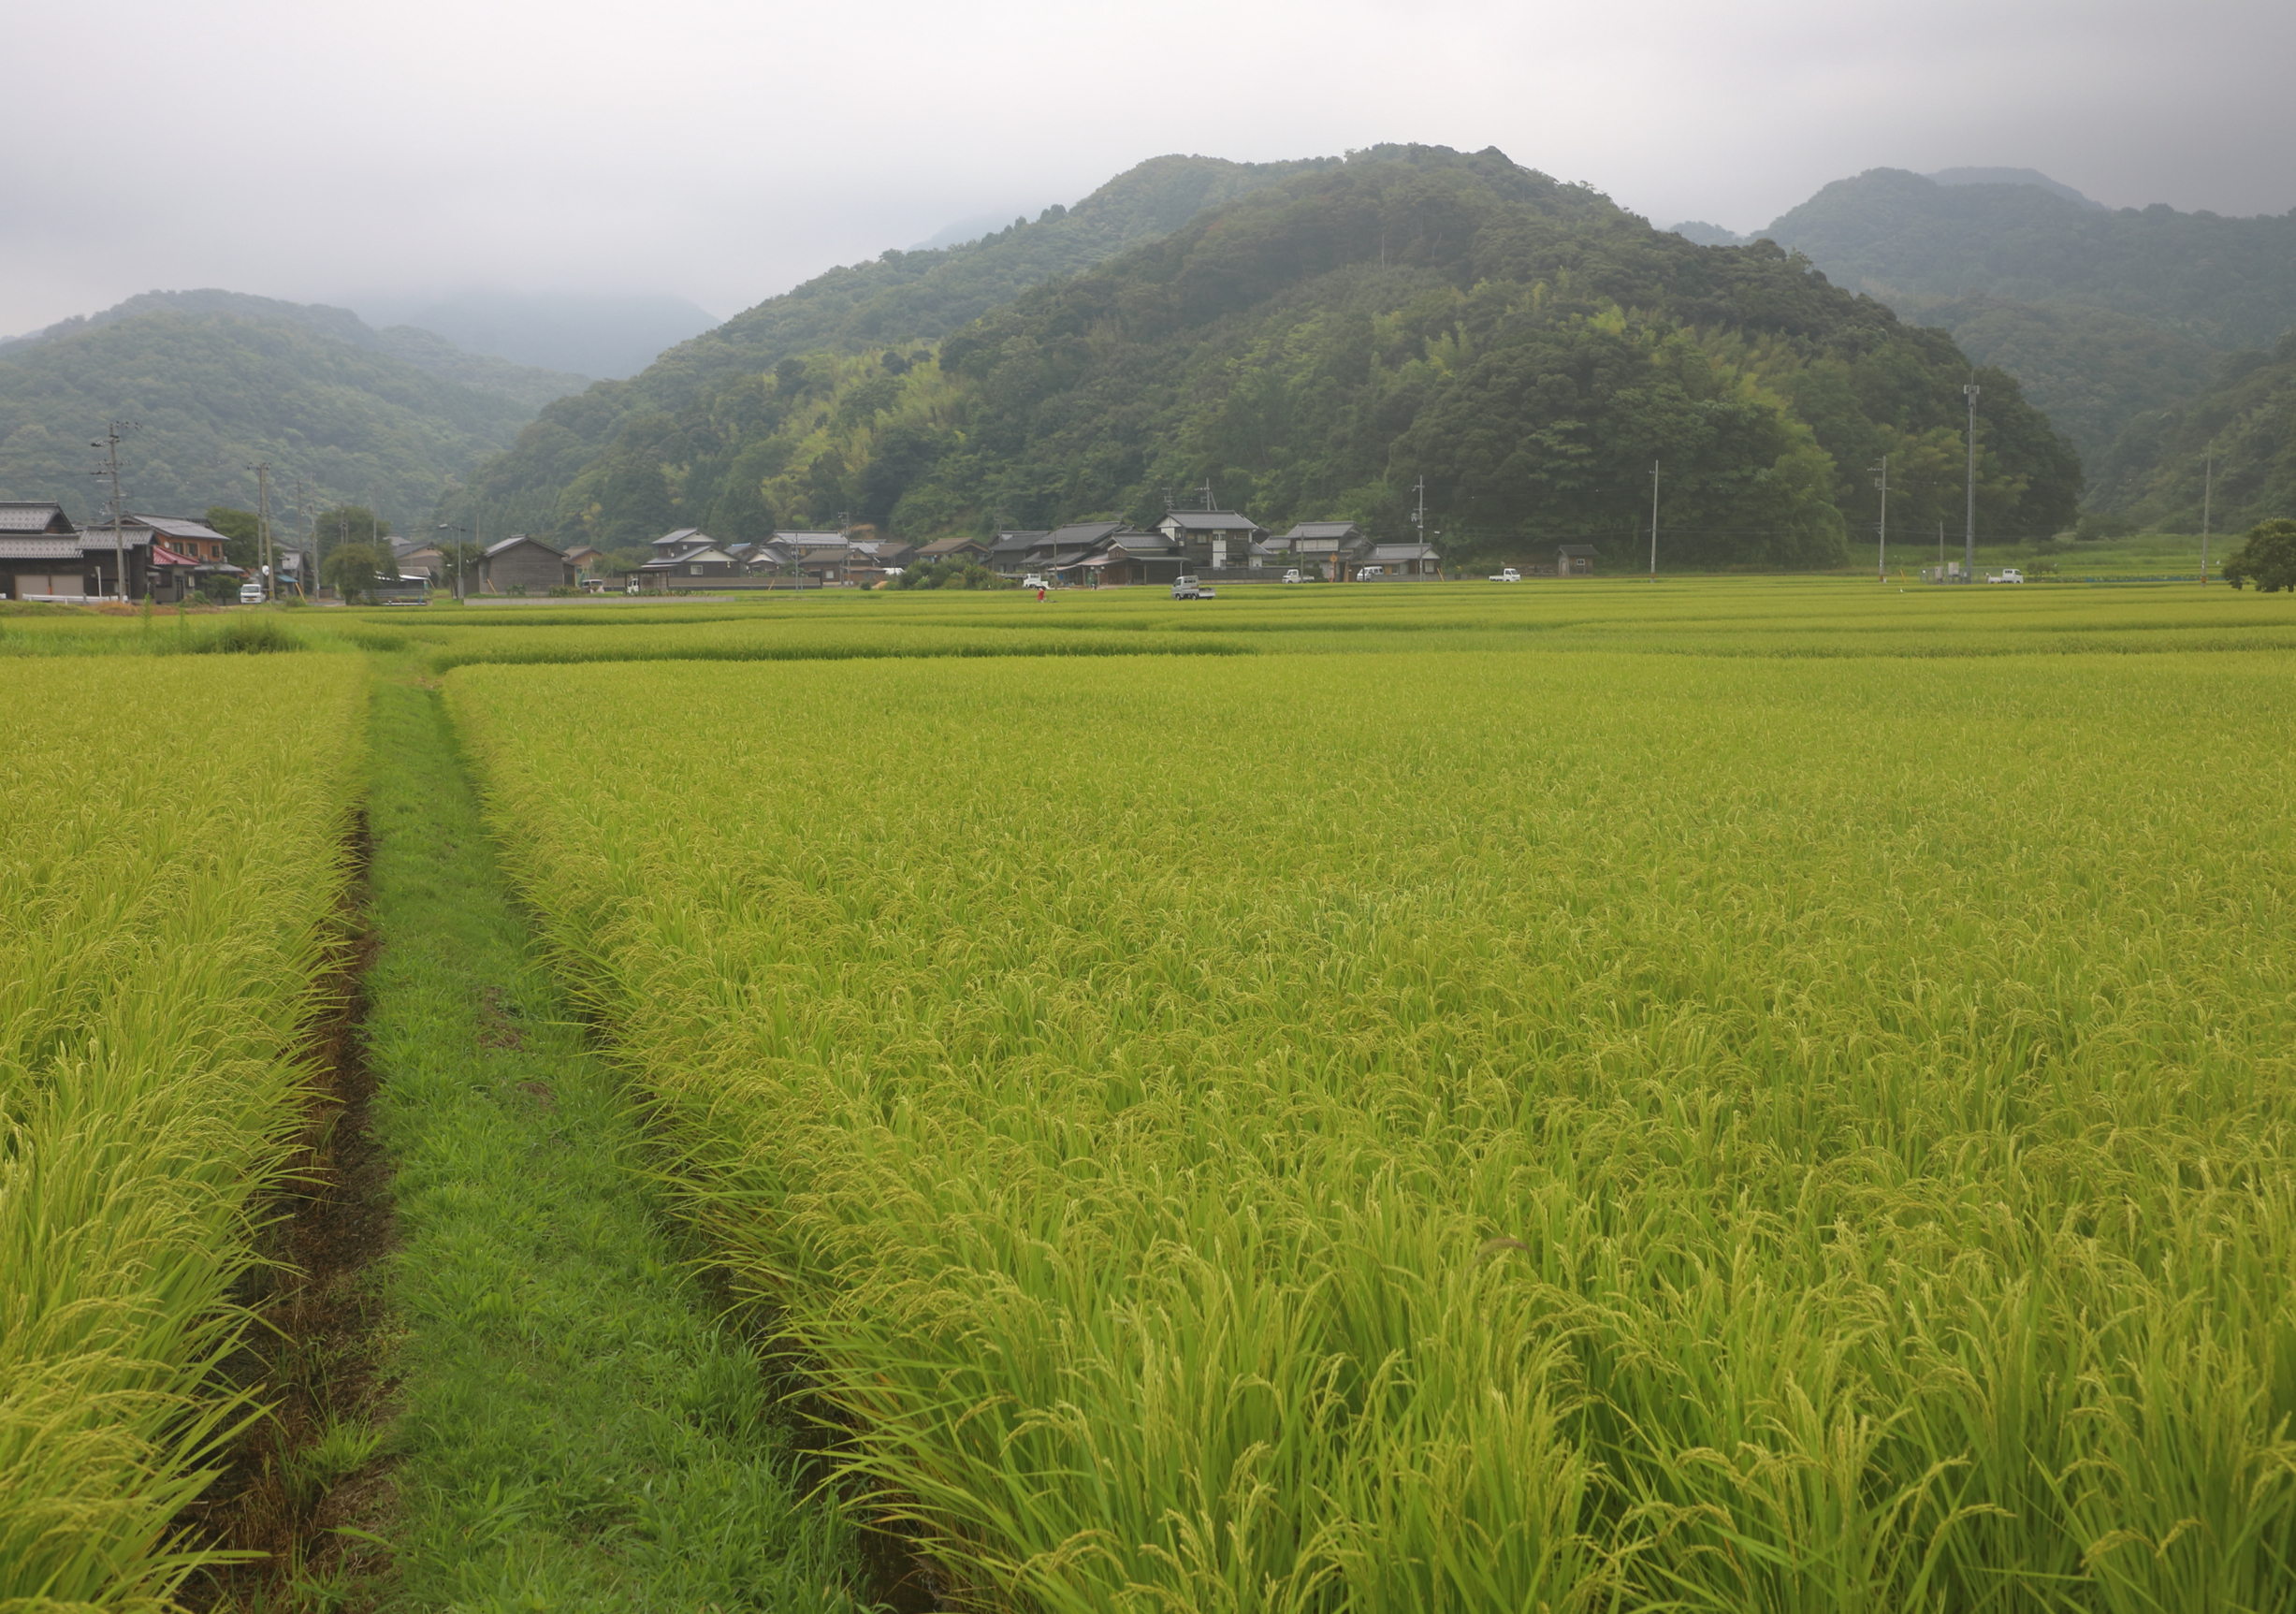 The interior of the Tango Peninsula is filled with large plateaus of rice fields and small farm towns where many residents weave fabric in their homes and at small workshops.